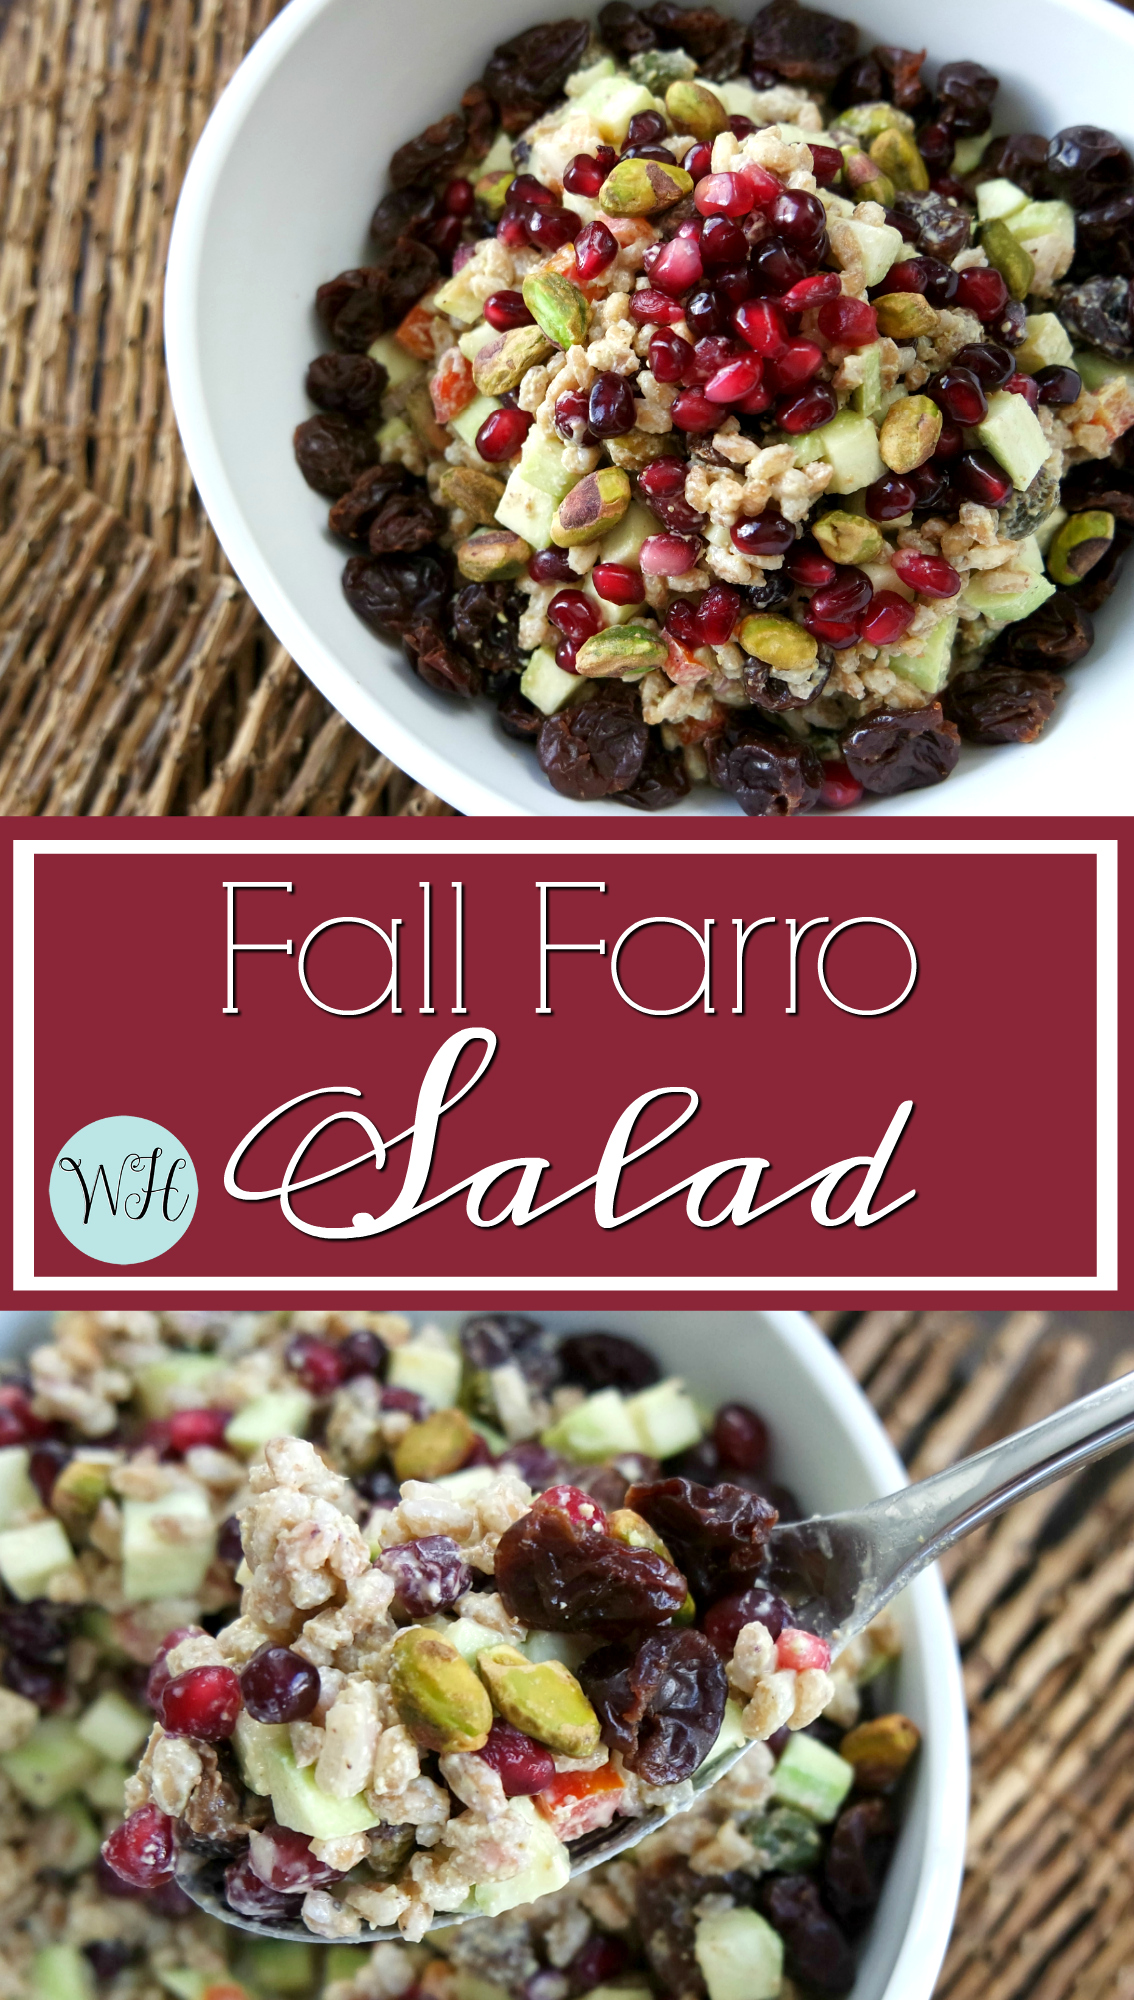 Pistachio & Pomagranate Fall #Farro Salad